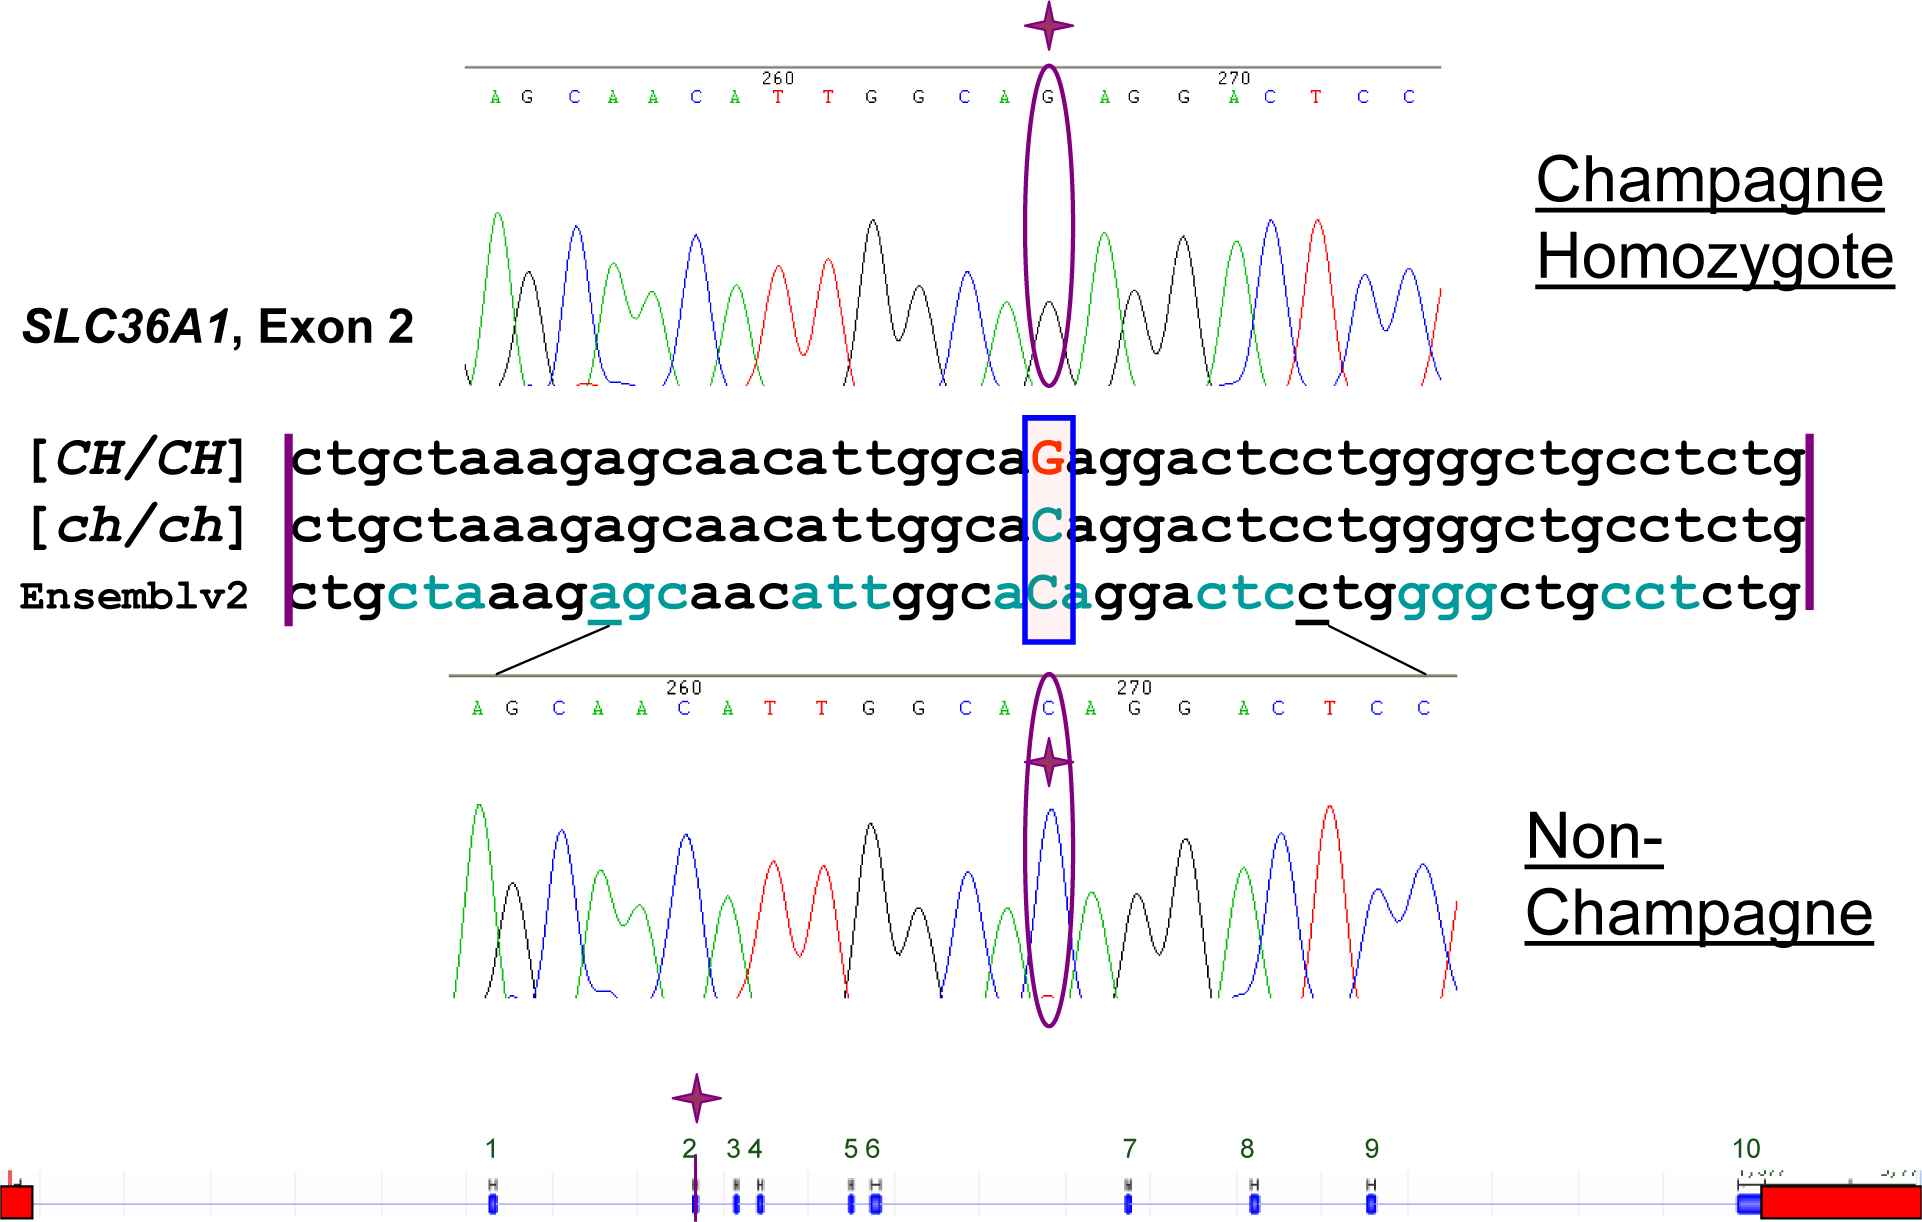 Sequence Alignment and Gene Diagram.